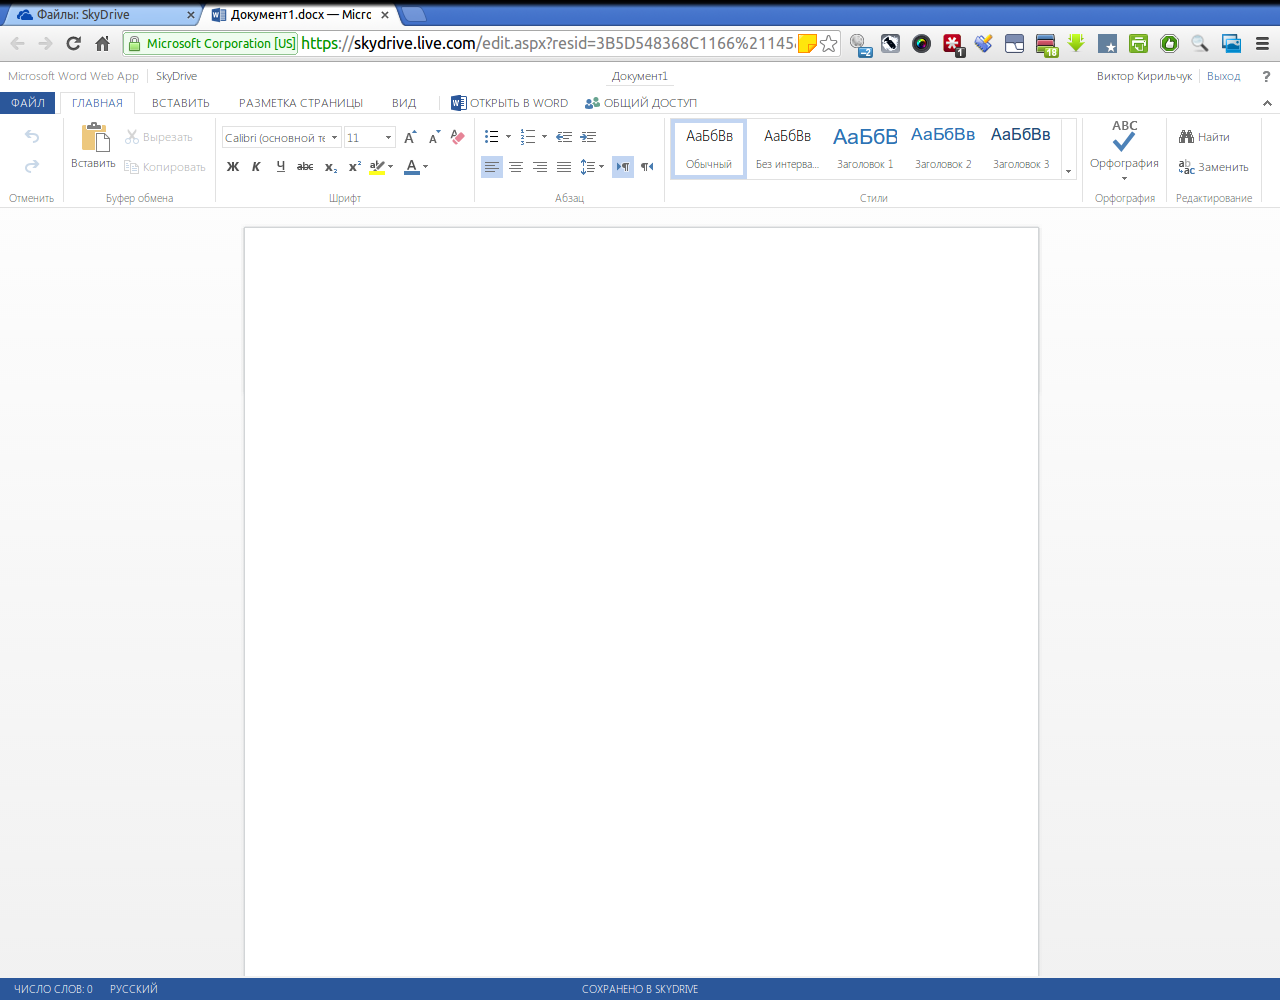 Документ1.docx — Microsoft Word Web App - Google Chrome_115